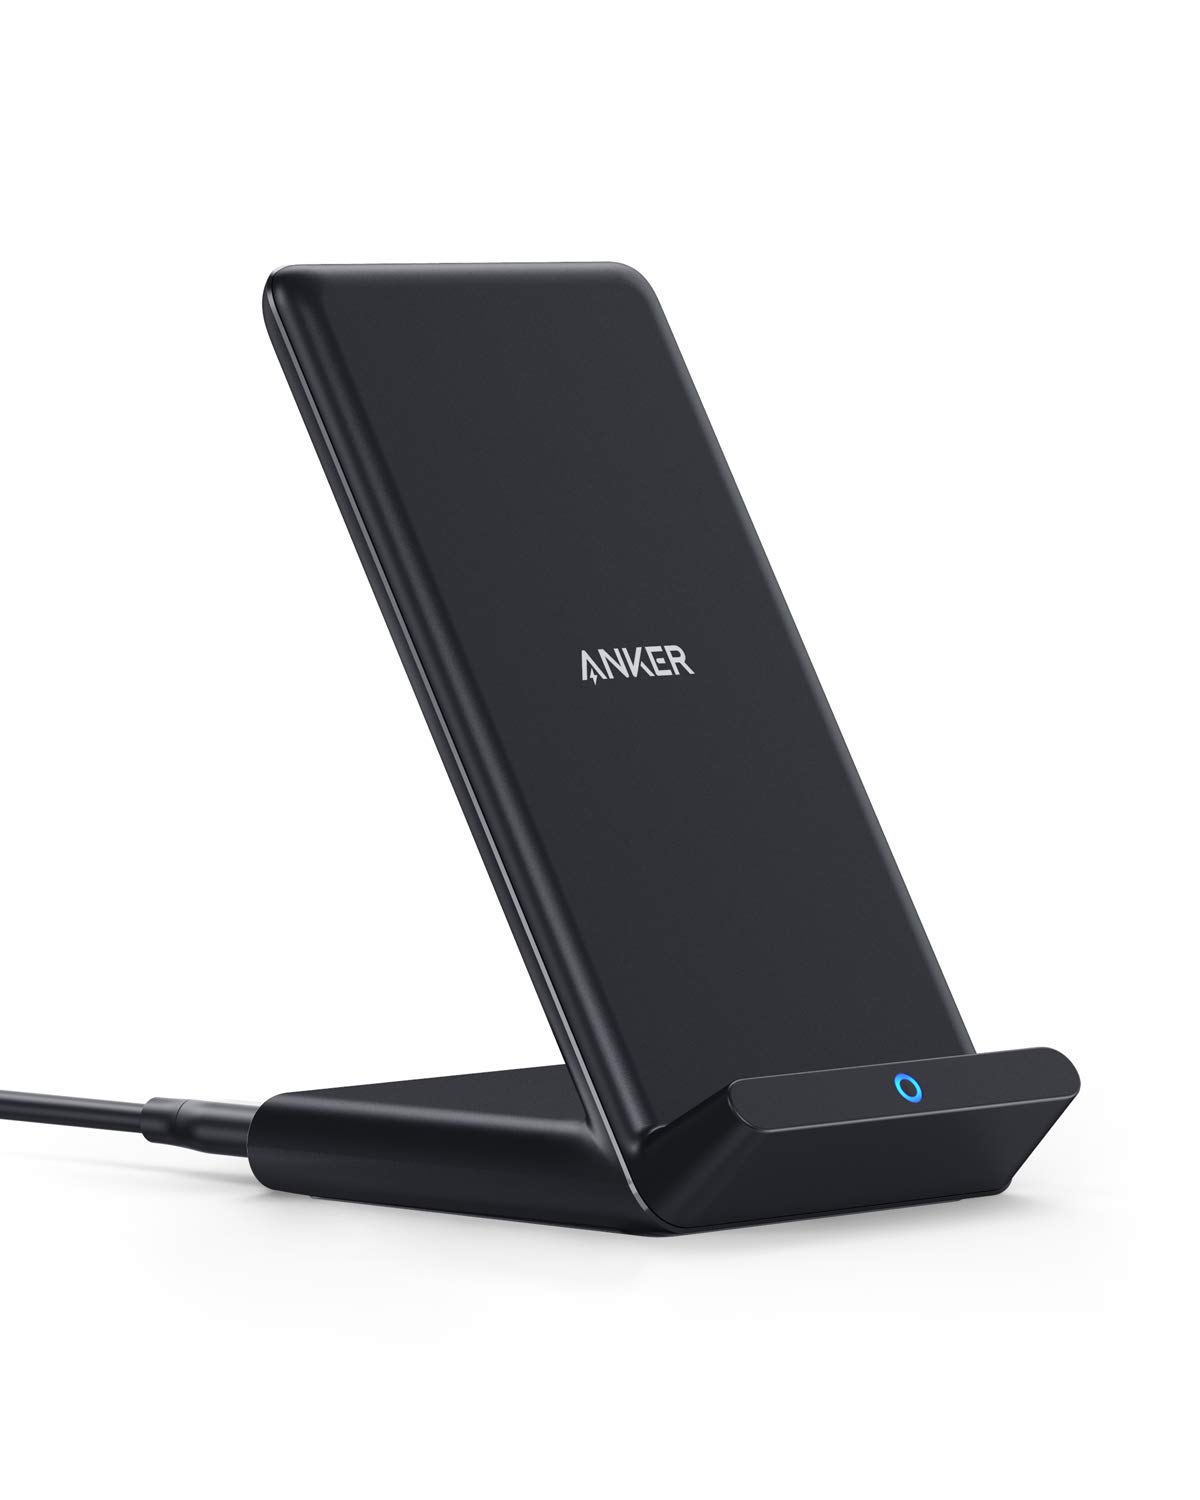 Anker Fast Wireless Charger, 10W Wireless Charging Stand, Qi-Certified, Compatible iPhone XR/Xs Max/XS/X/8/8 Plus, Fast-Charging Galaxy S9/S9+/S8/S8+/Note 9 and More, PowerWave Stand (No AC Adapter) AK-A2524011